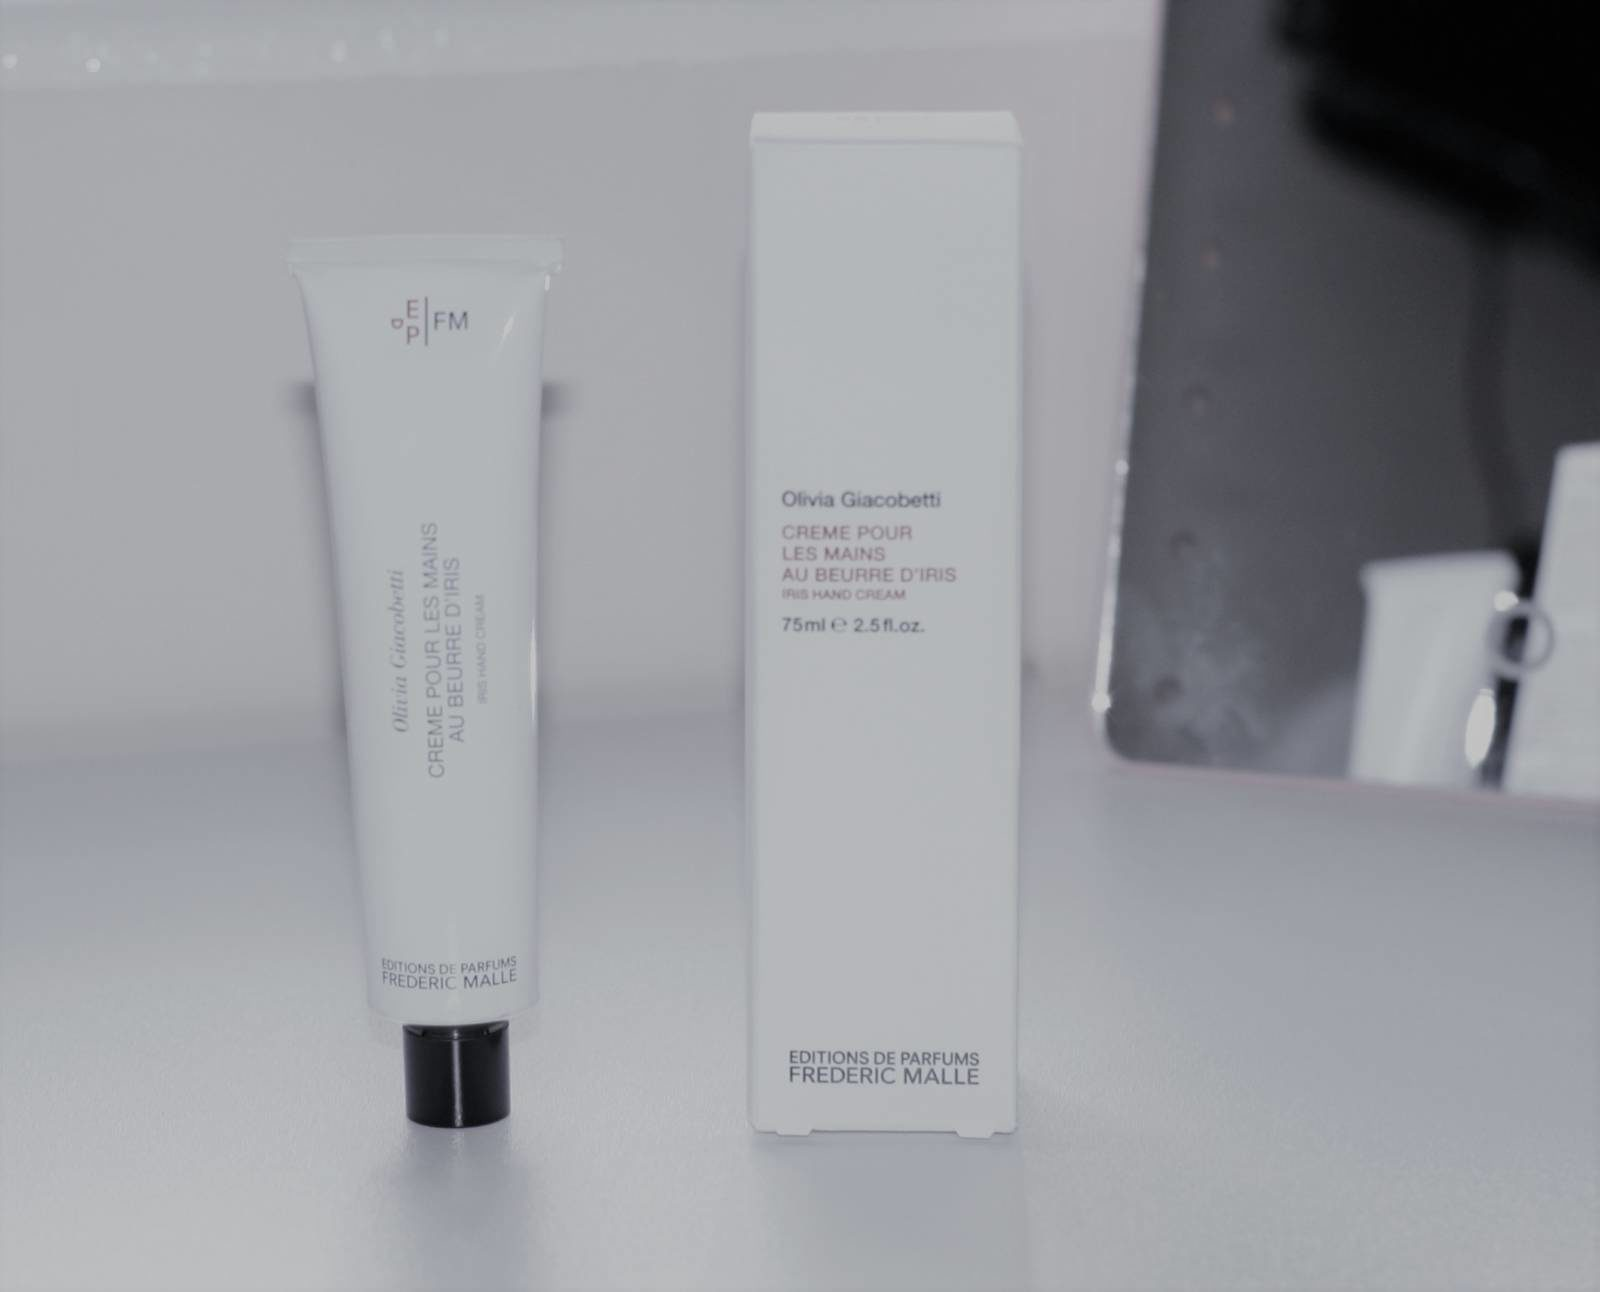 Frederic Malle Iris Hand Cream Review